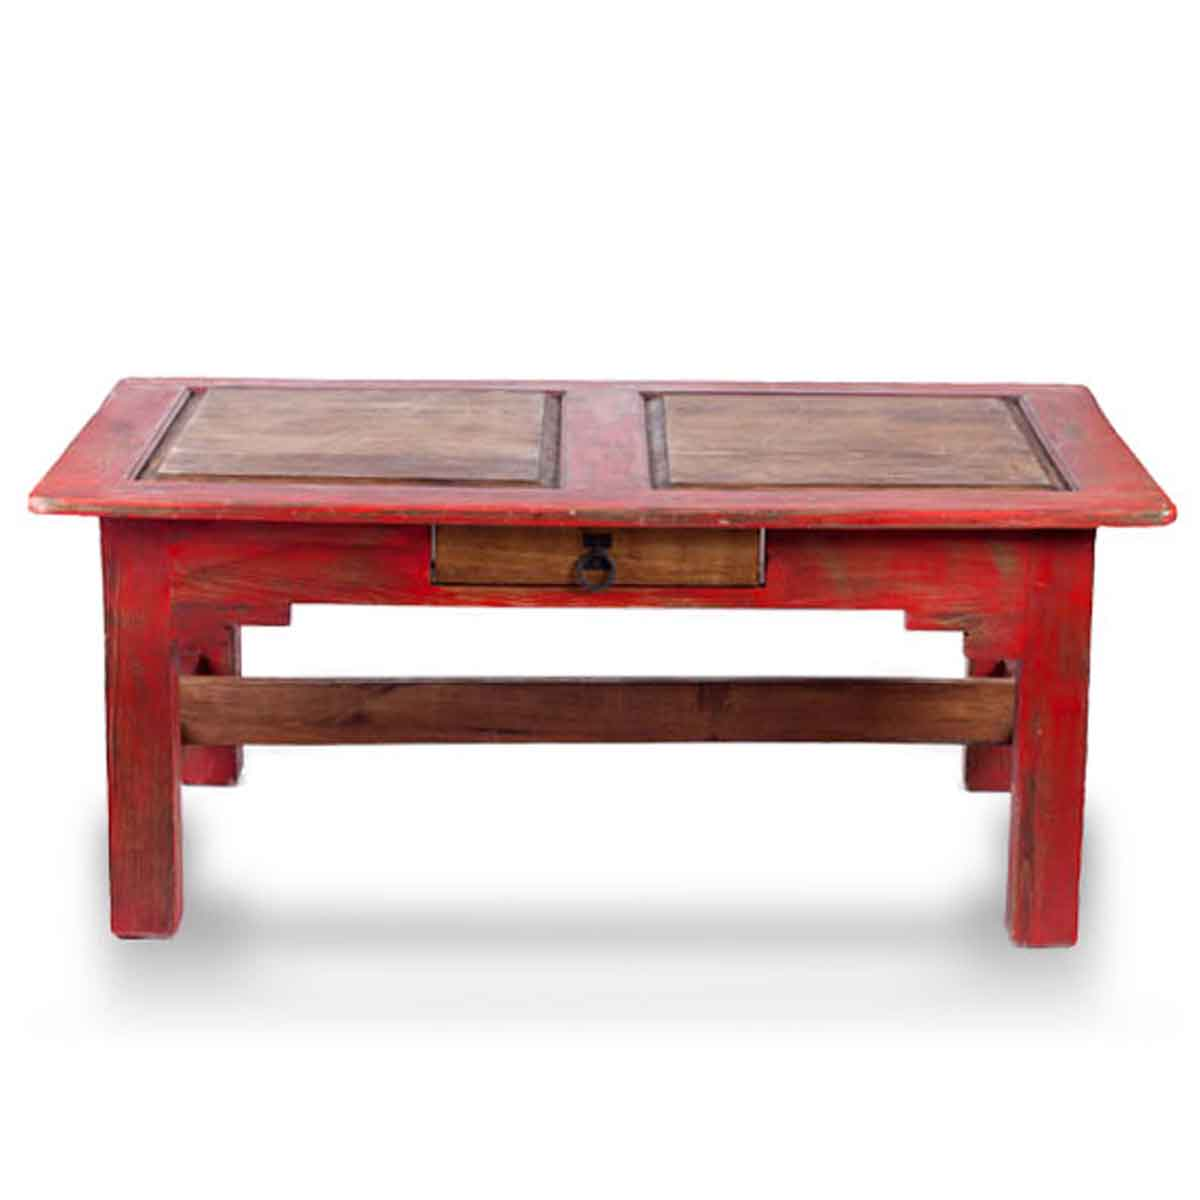 Mexican Pine Coffee Table Buy Acuna Rustic Coffee Table Online Made From Kiln Dried Pine